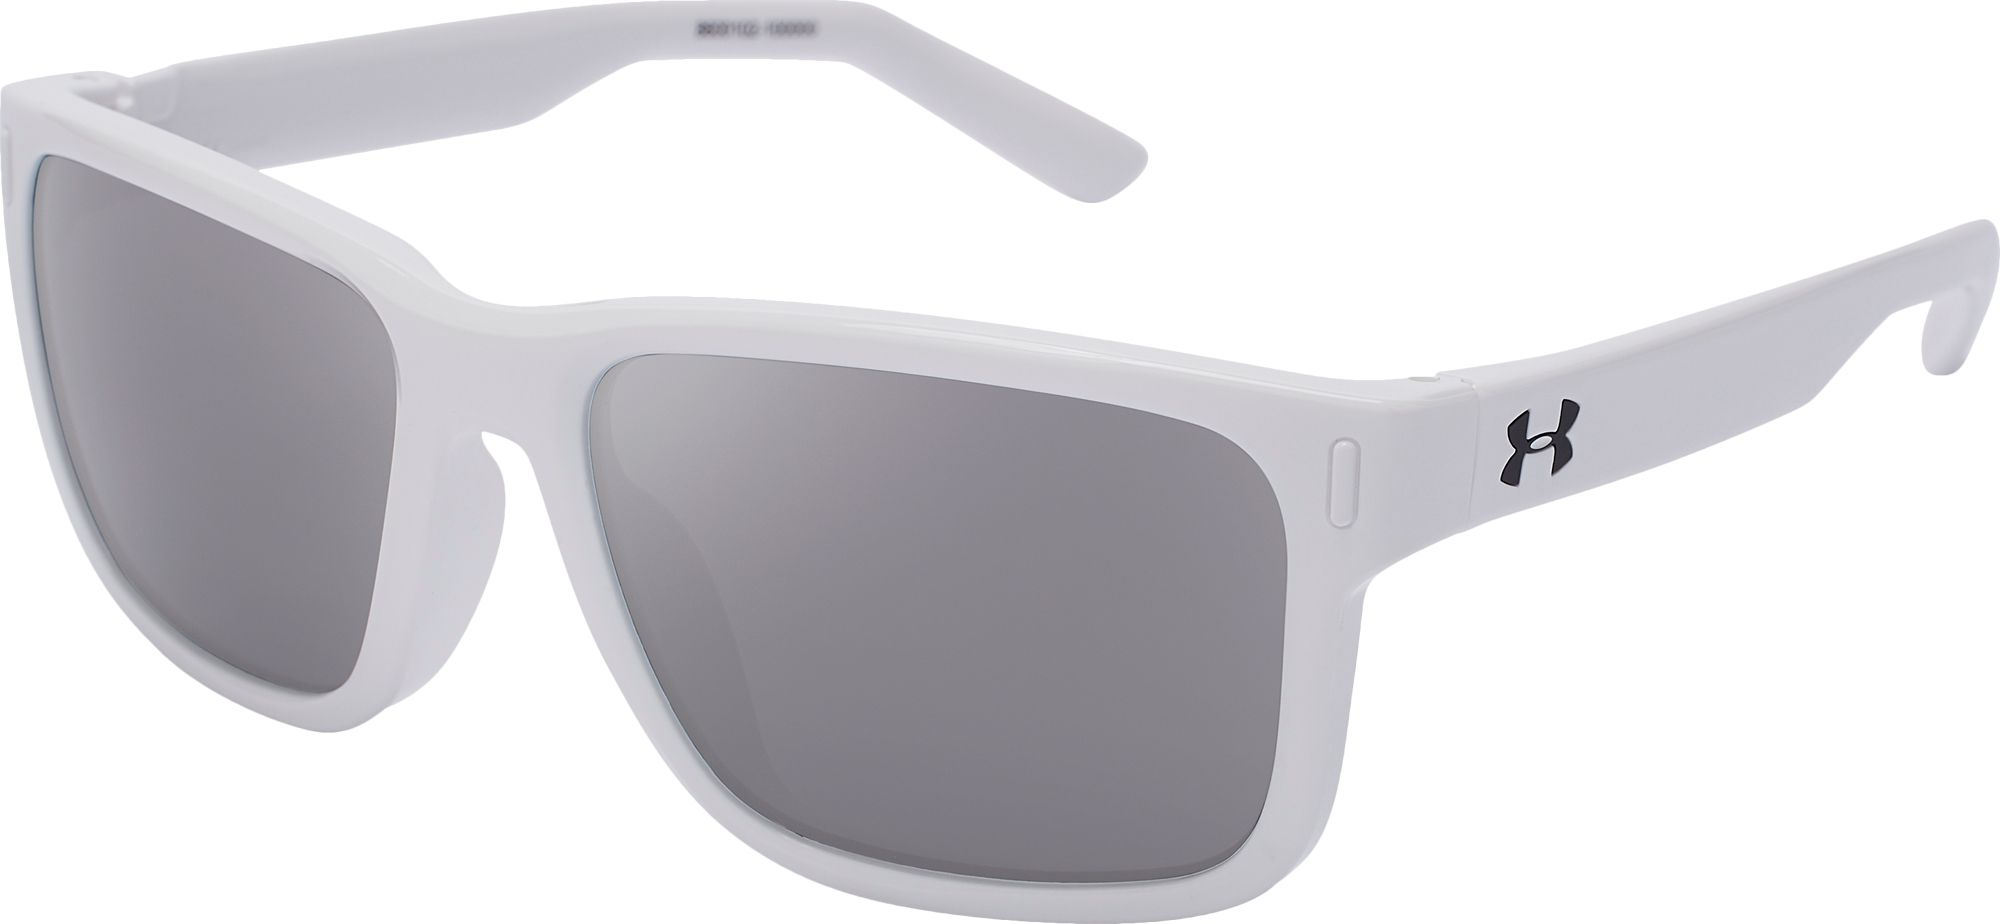 cheap youth oakley sunglasses 1u6g  oakley youth sunglasses cheap